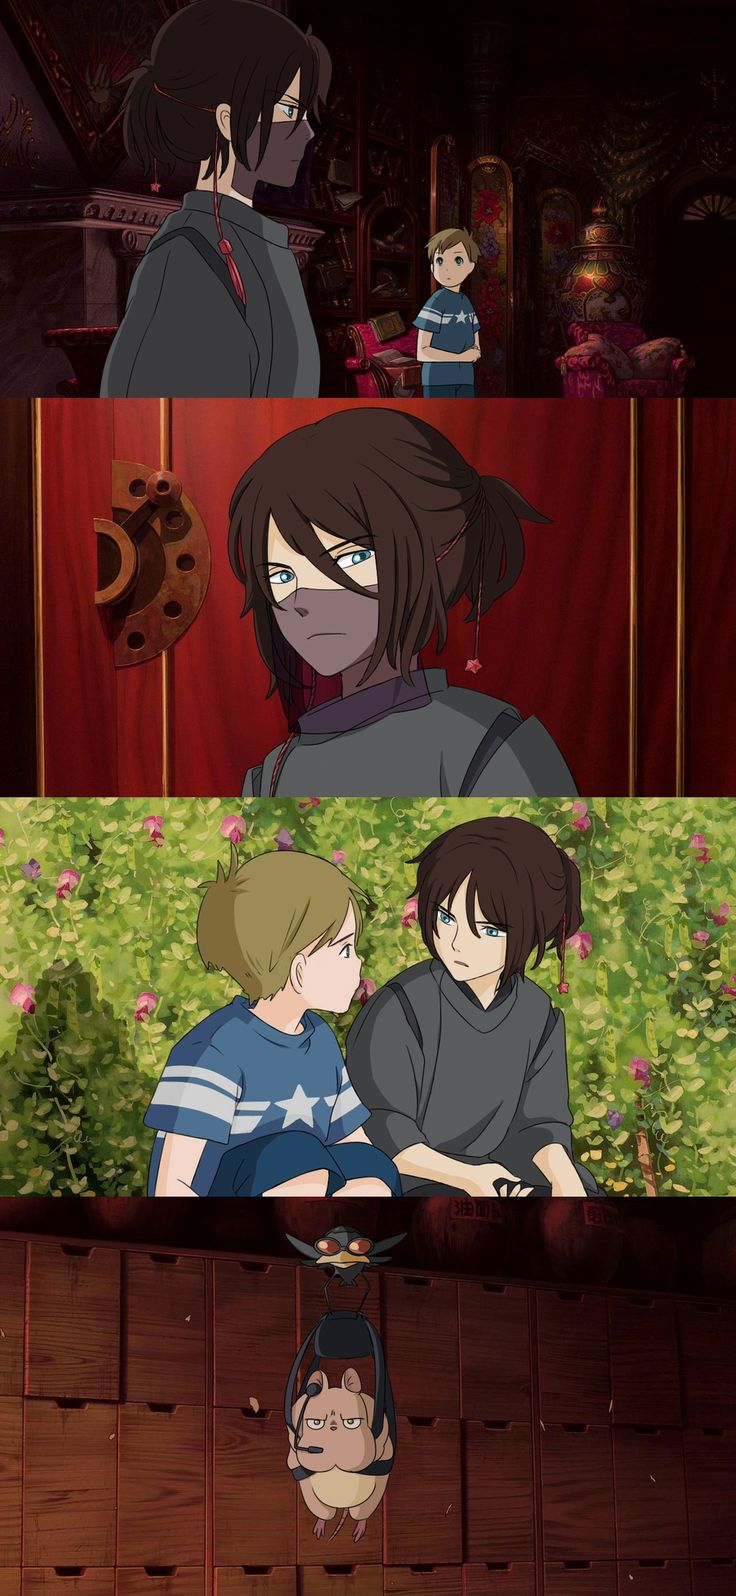 http://talkdrarrytome.tumblr.com/post/142990705646 Stucky and spirited away ahhhhhh